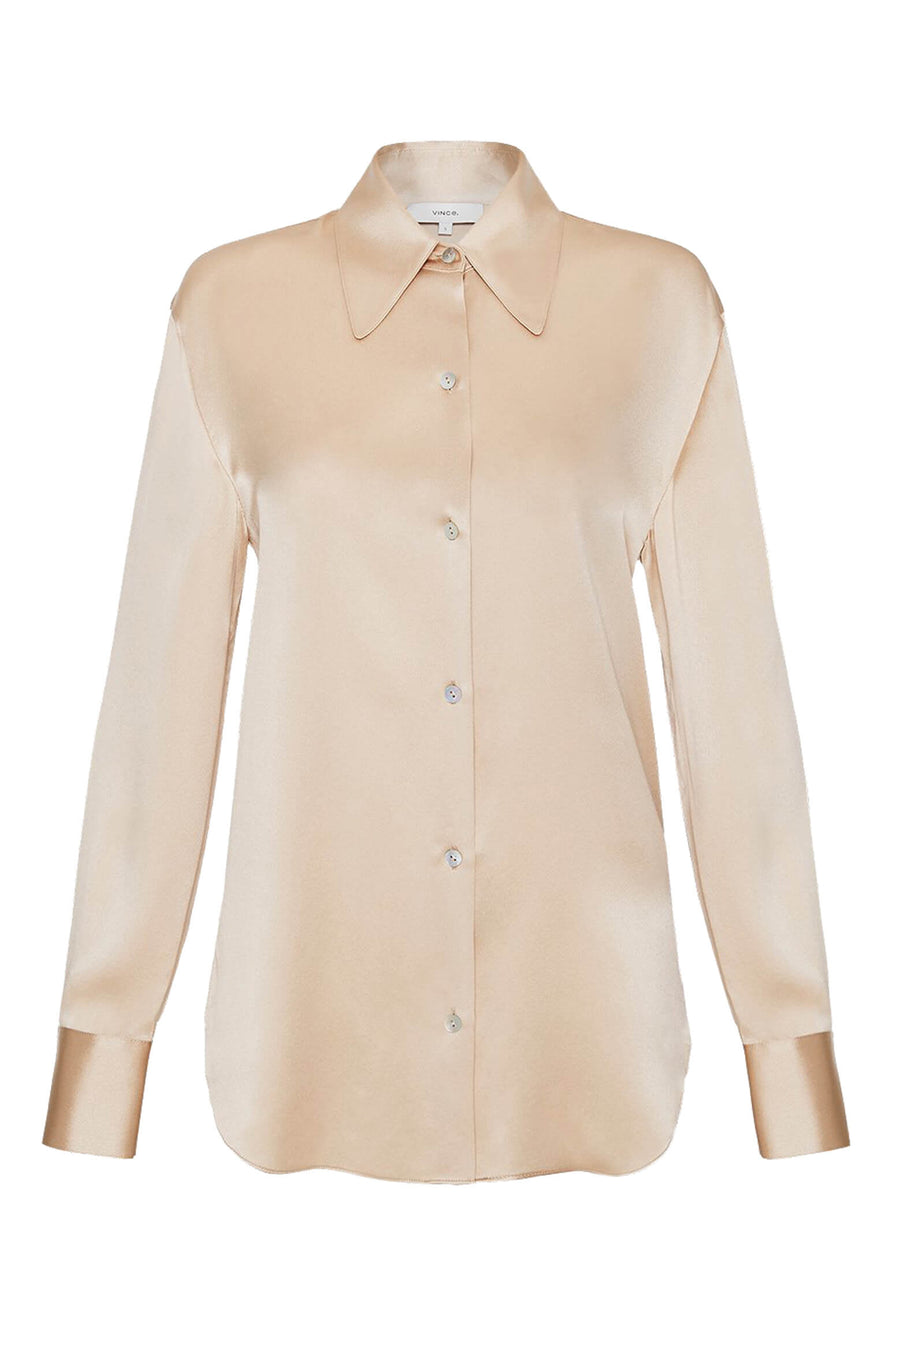 VINCE. Shaped Collar Blouse Sand Dollar in Sand Dollar from The New Trend